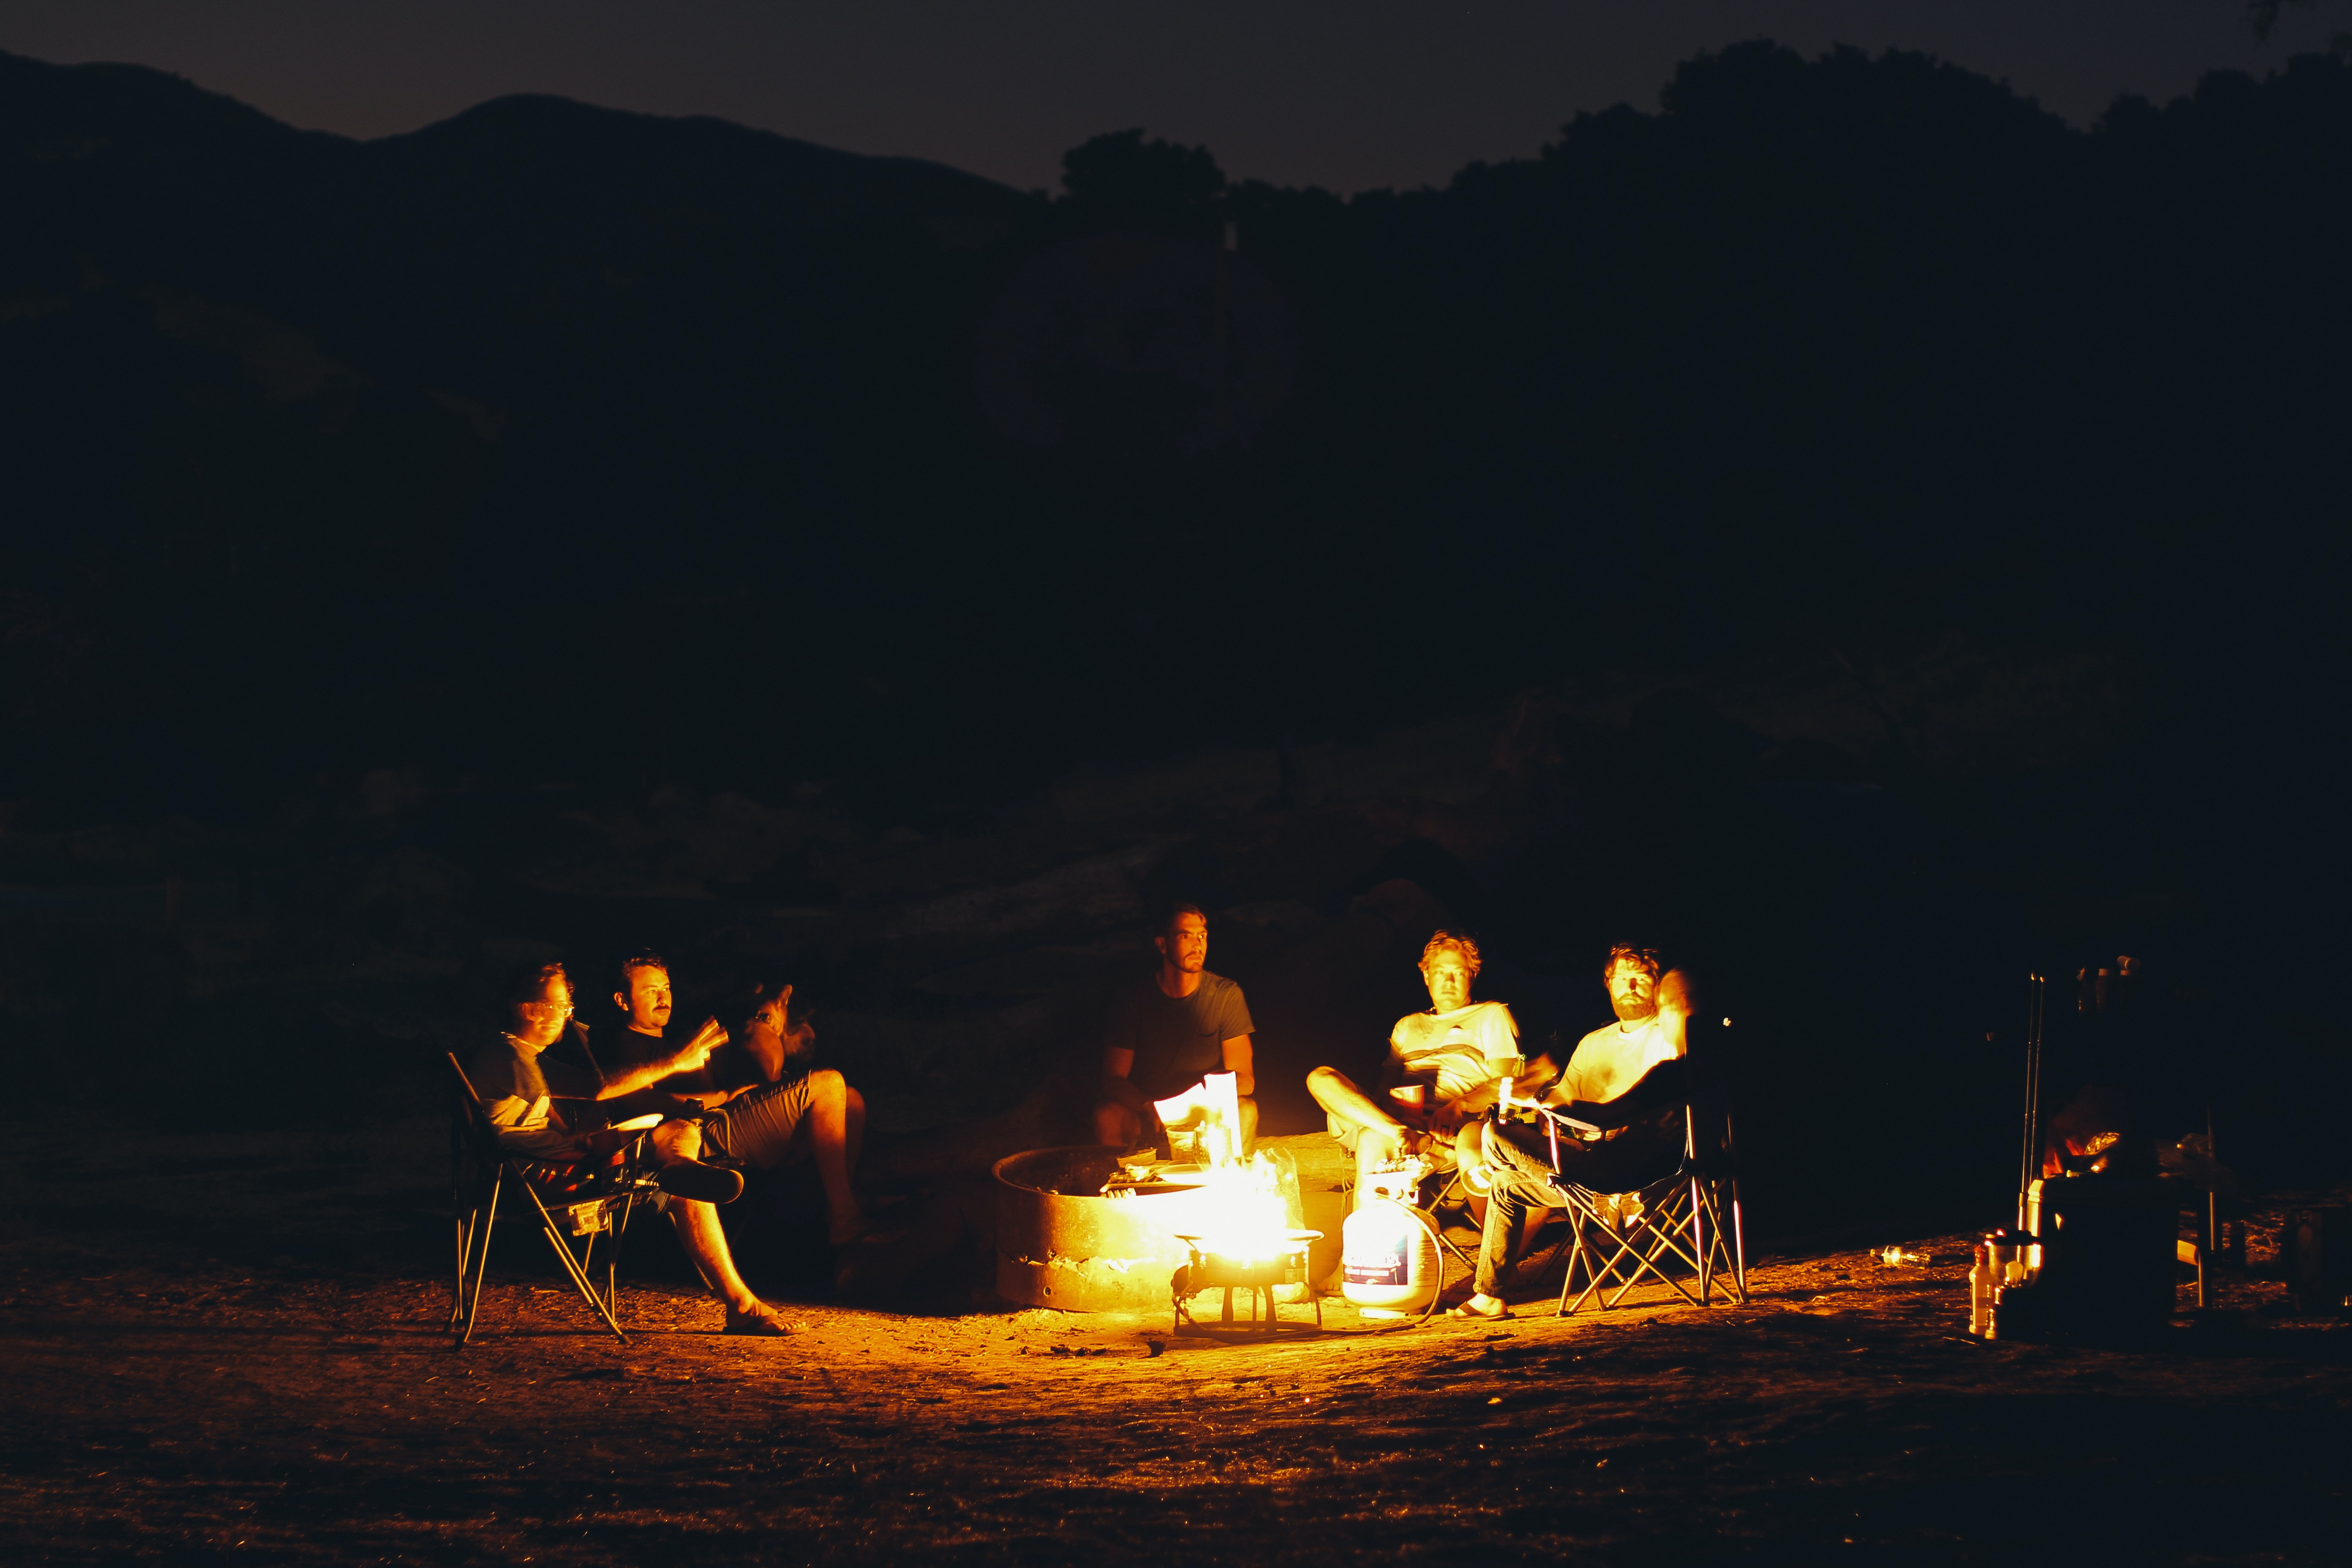 group of people seating around bonfire